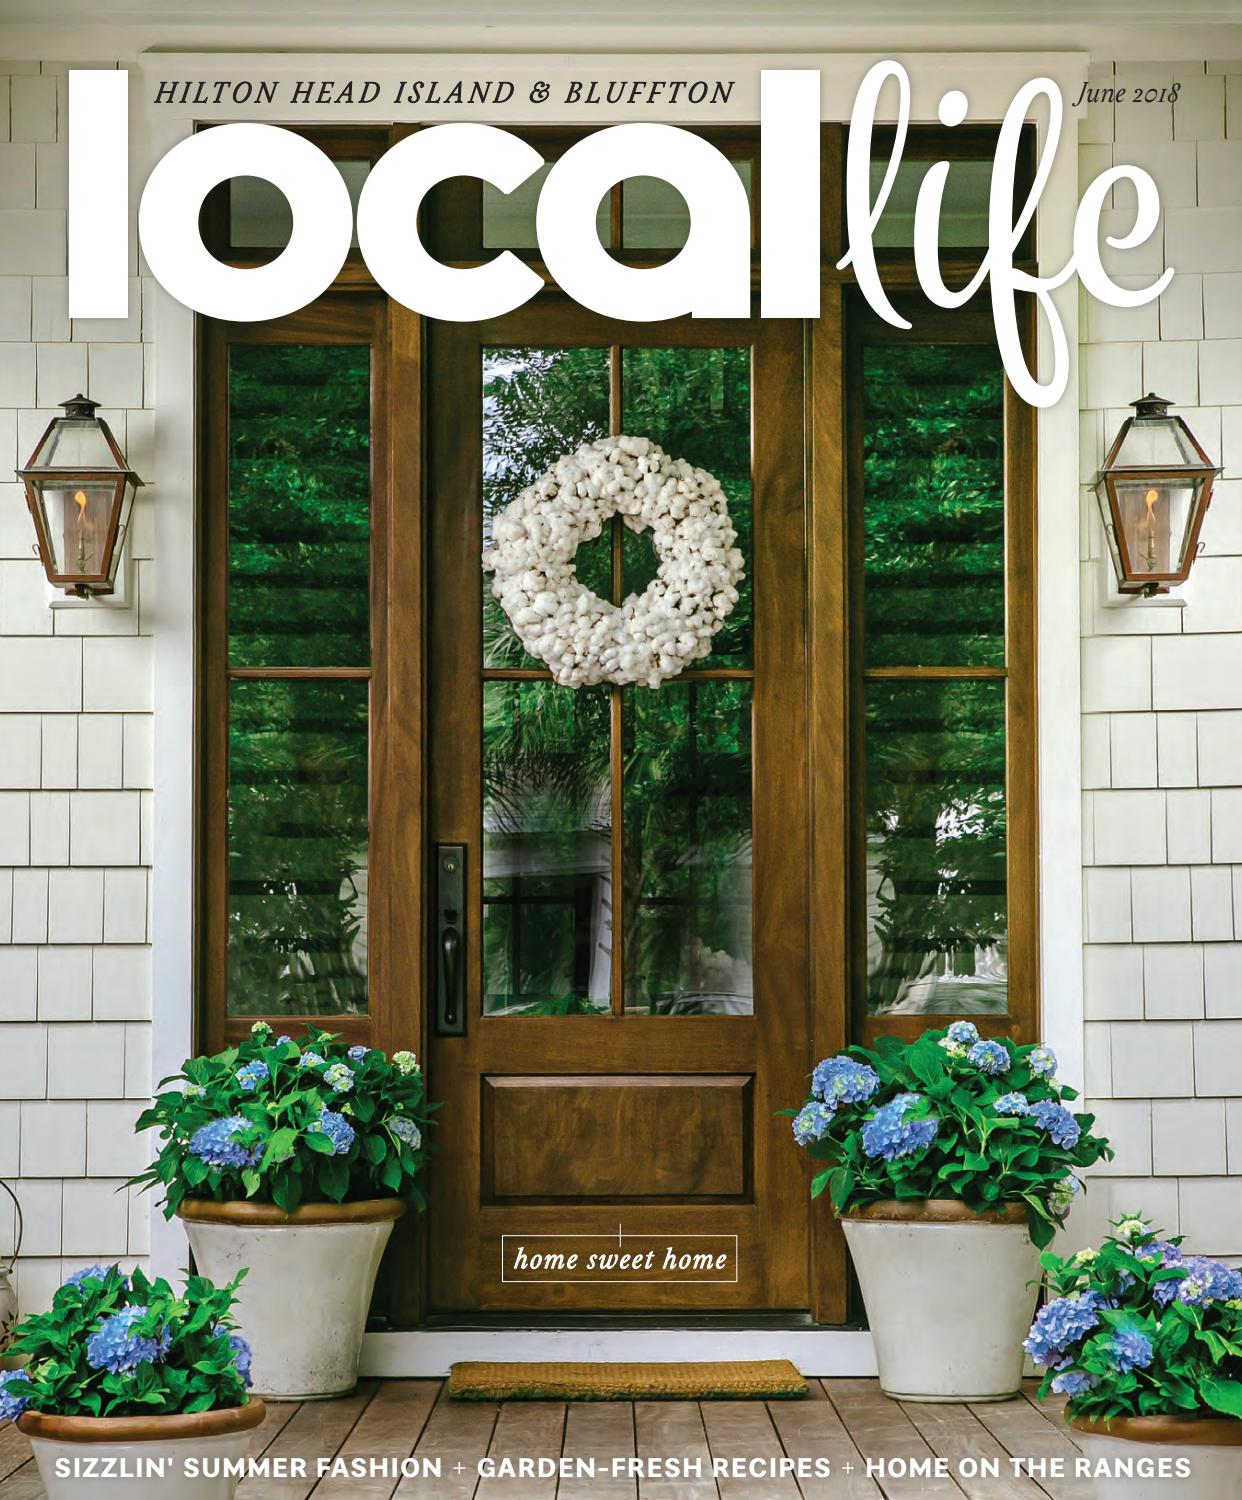 Cucina Rustica Meaning Local Life Magazine June 2018 By Locallife Issuu